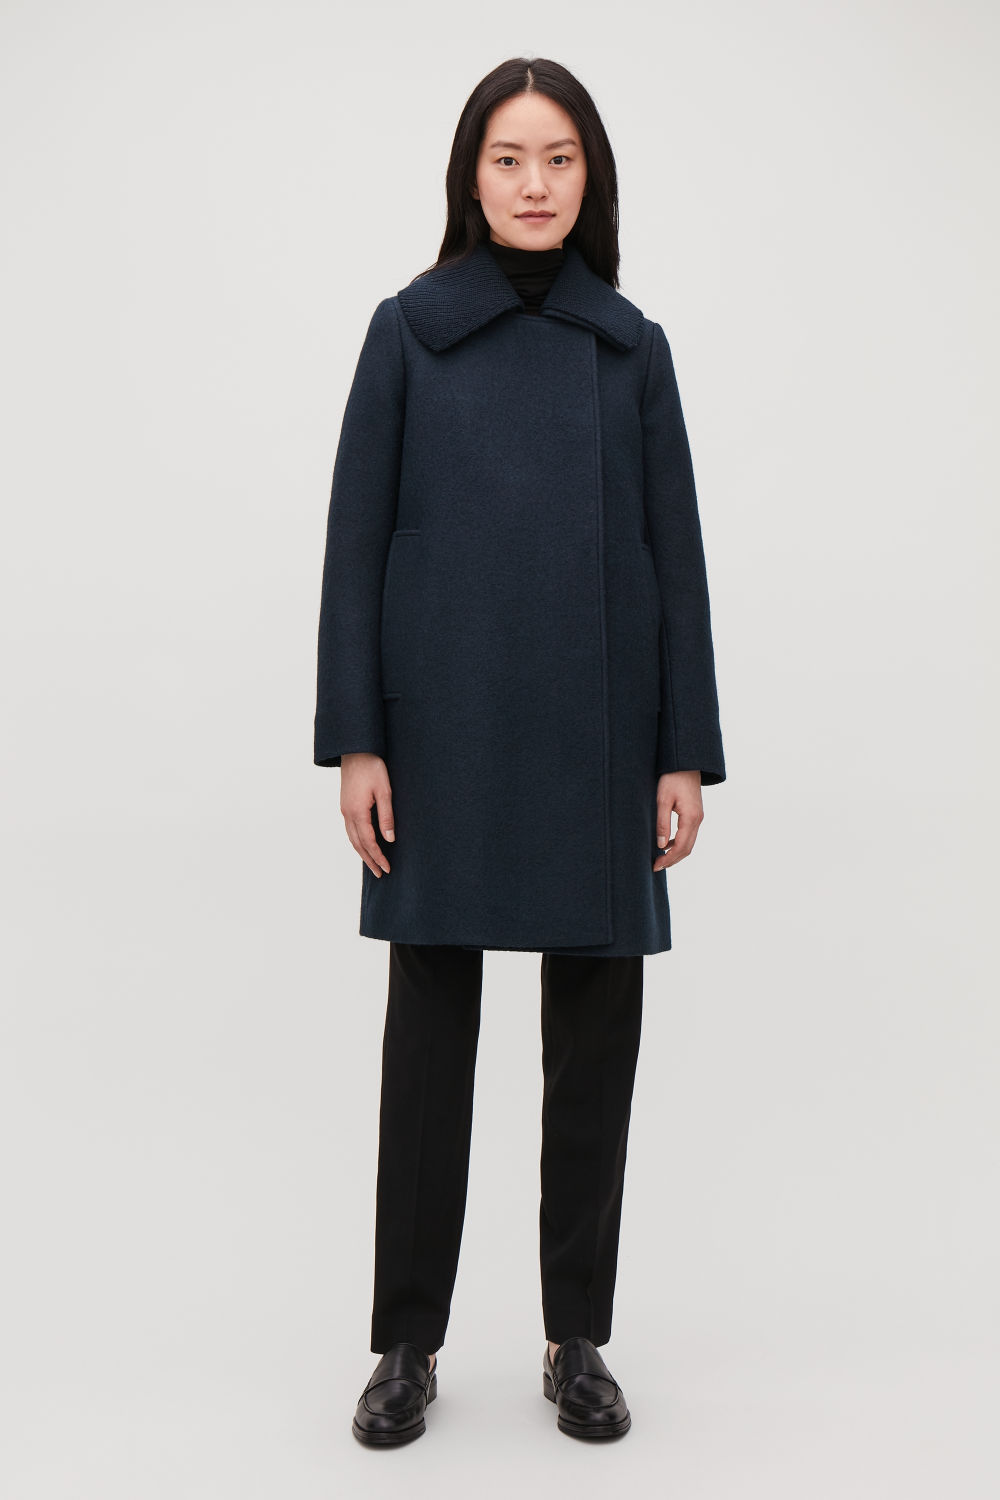 KNITTED-COLLAR WOOL COAT